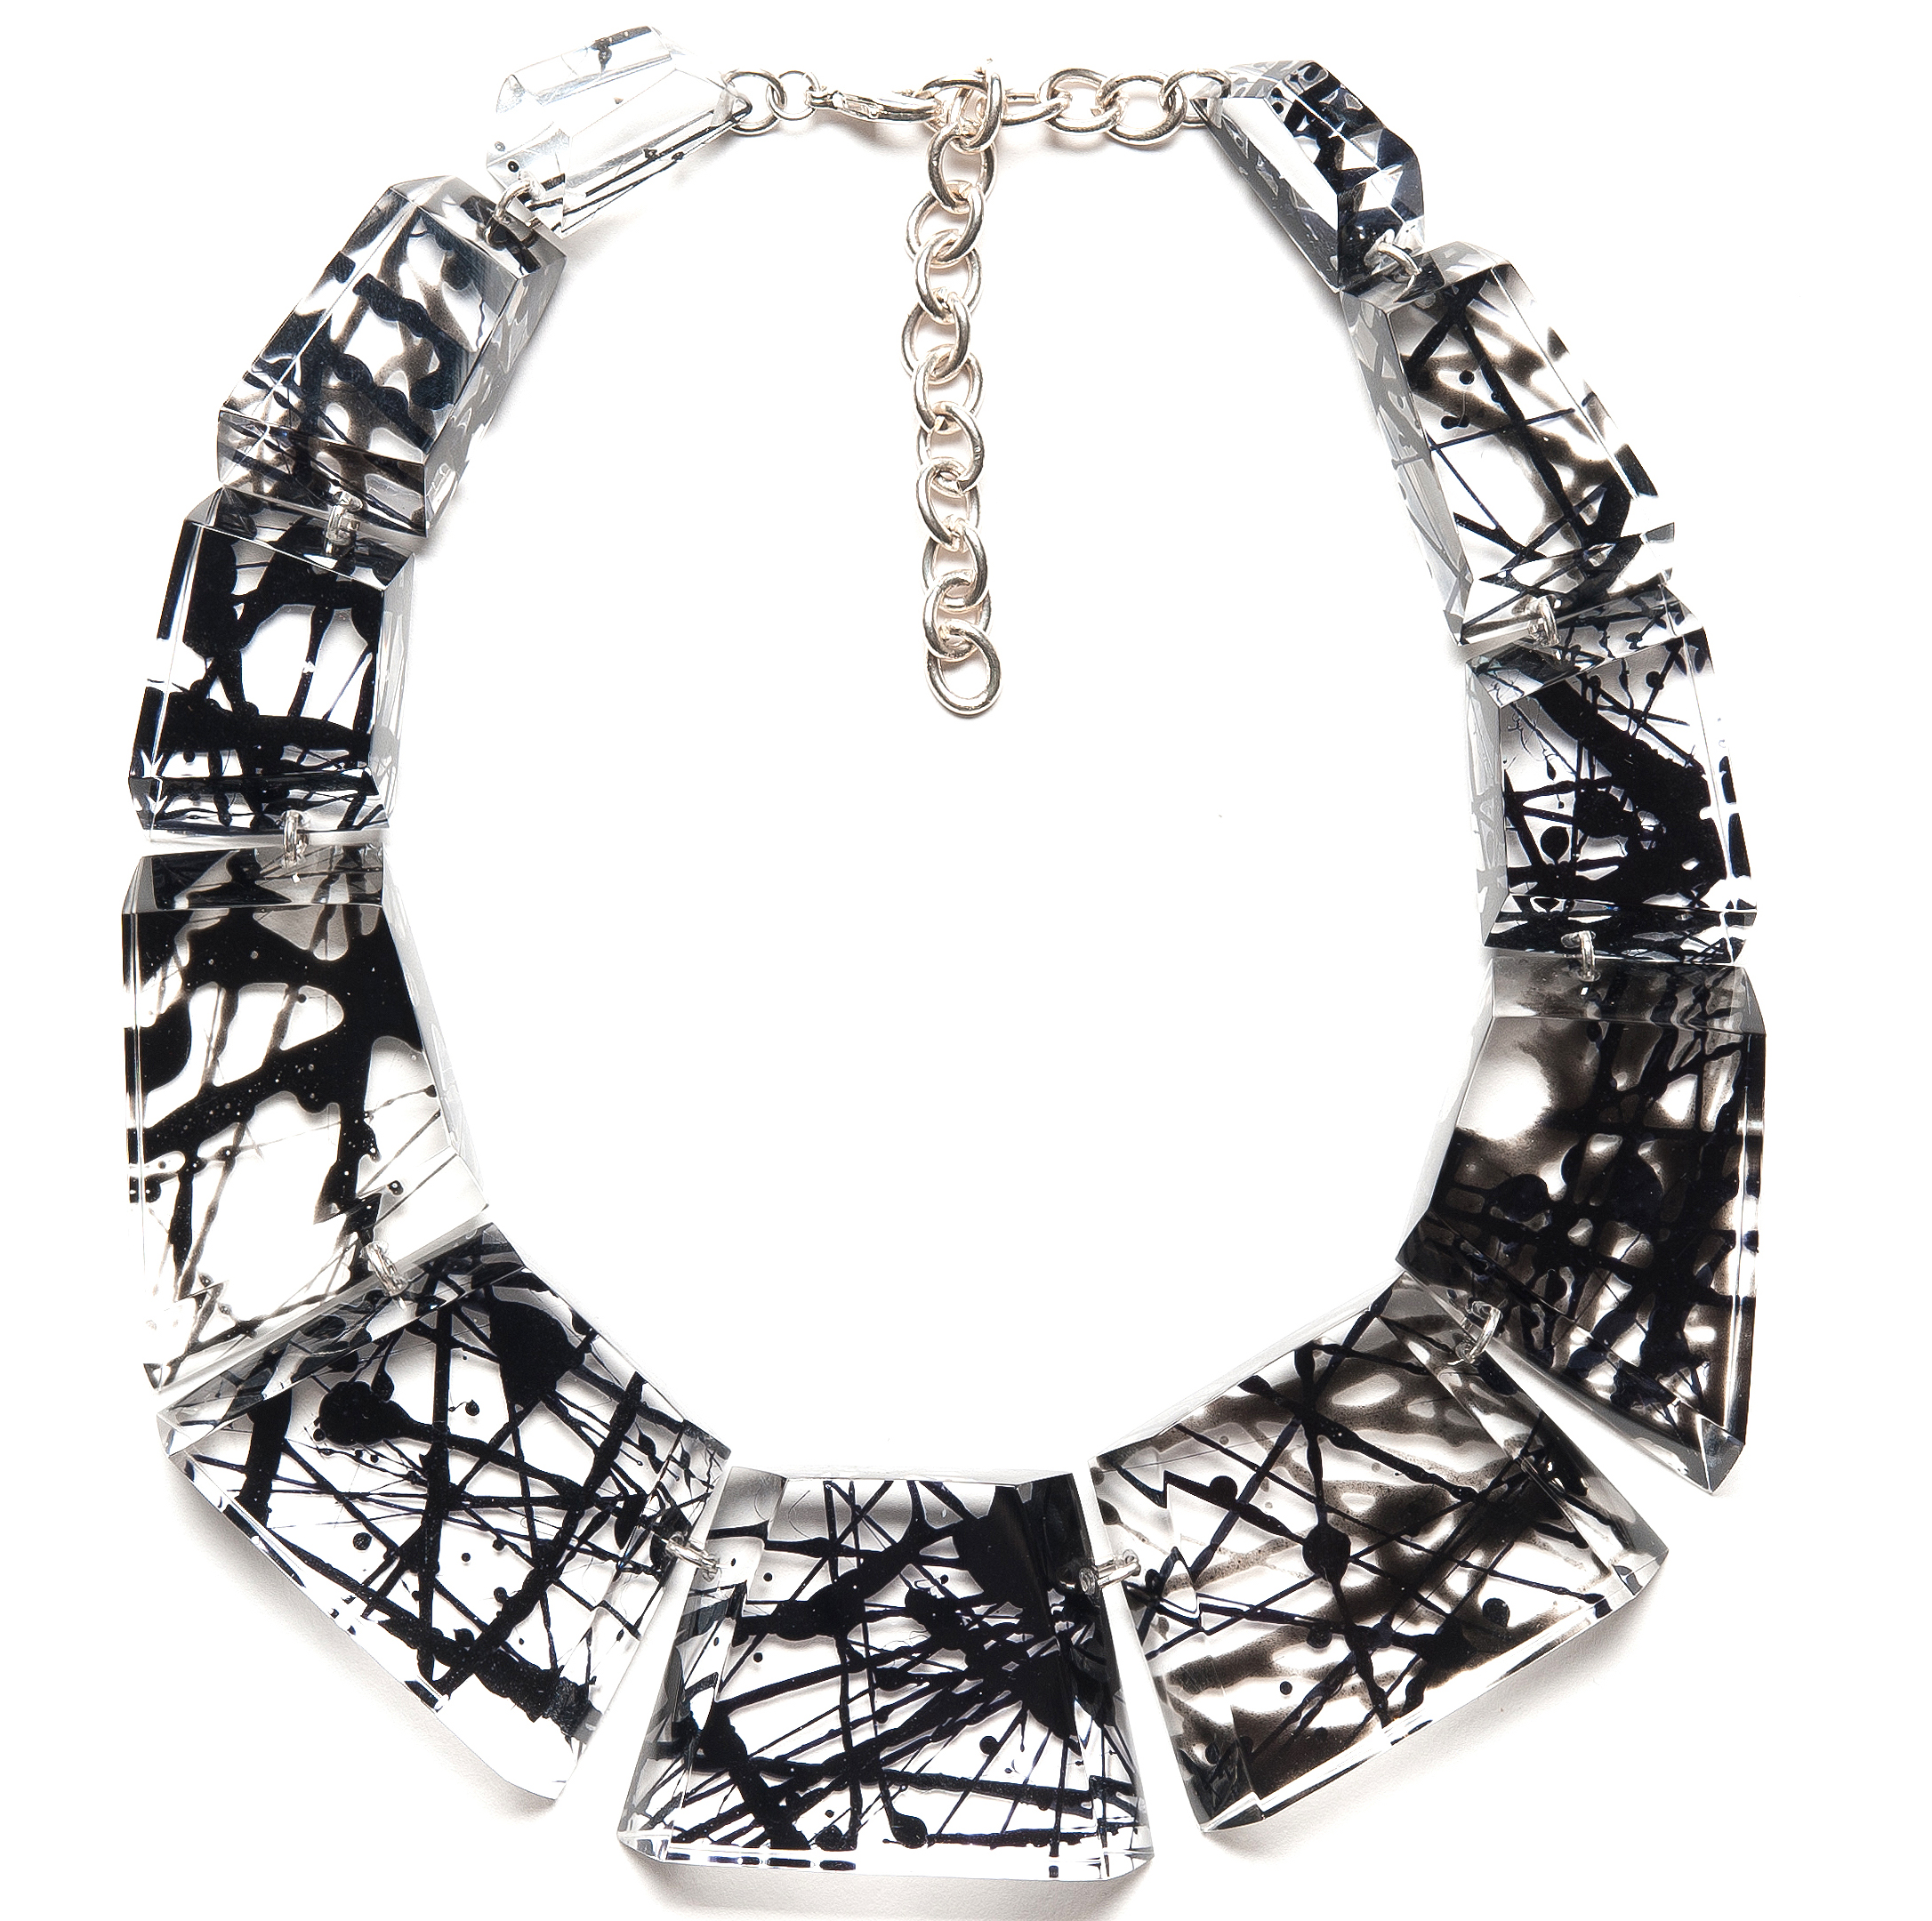 Laurent Guillot Strier Black lucite necklace